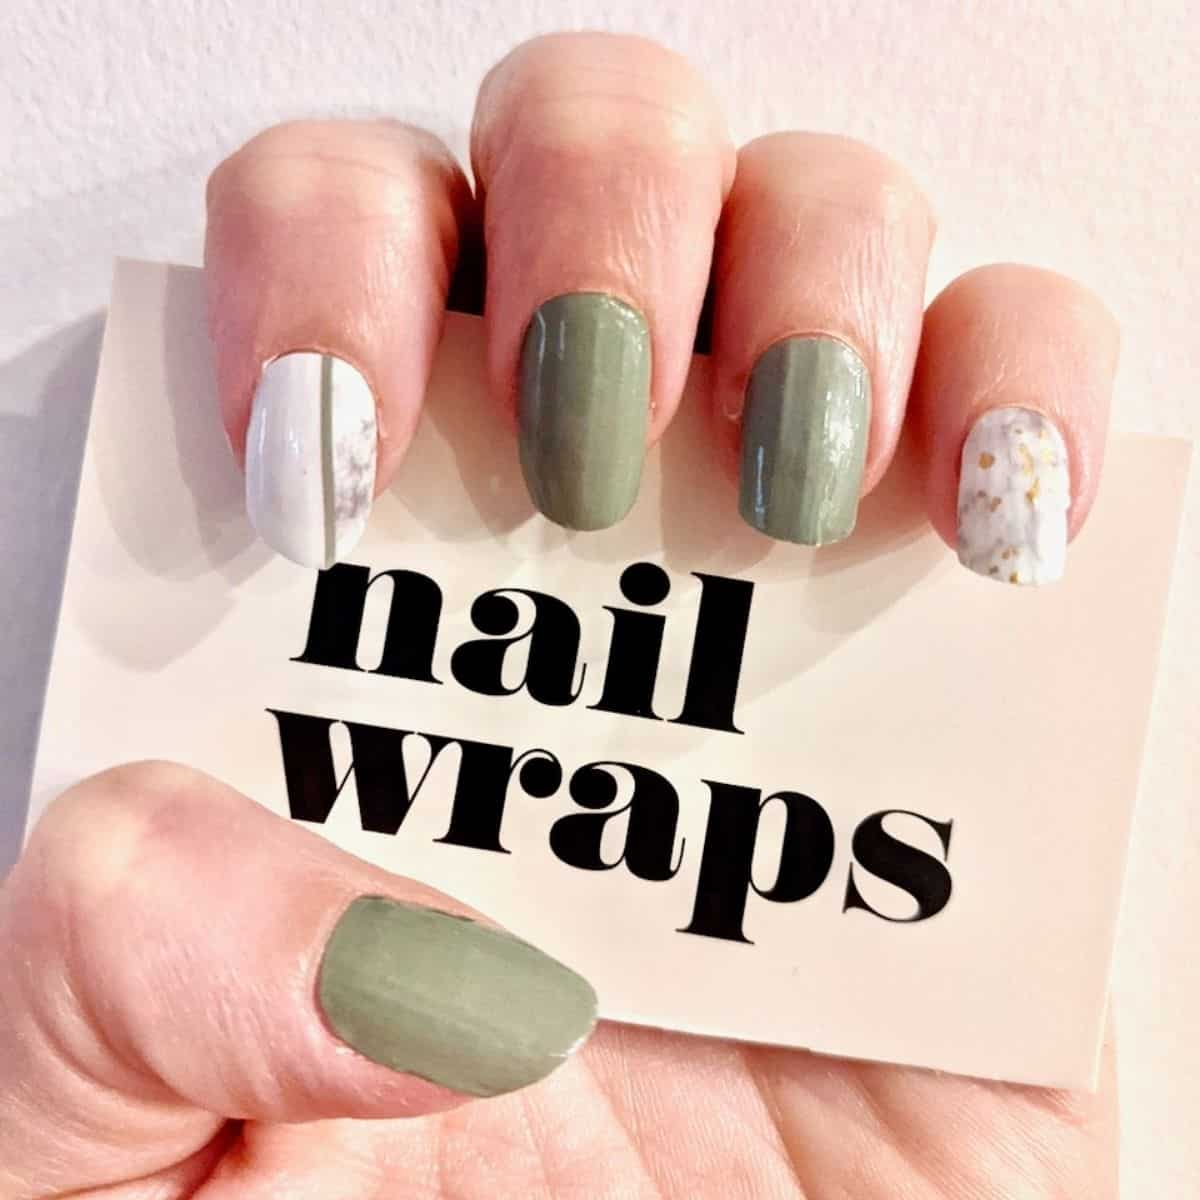 Nails Mailed Affordable, But Are They Right For You?